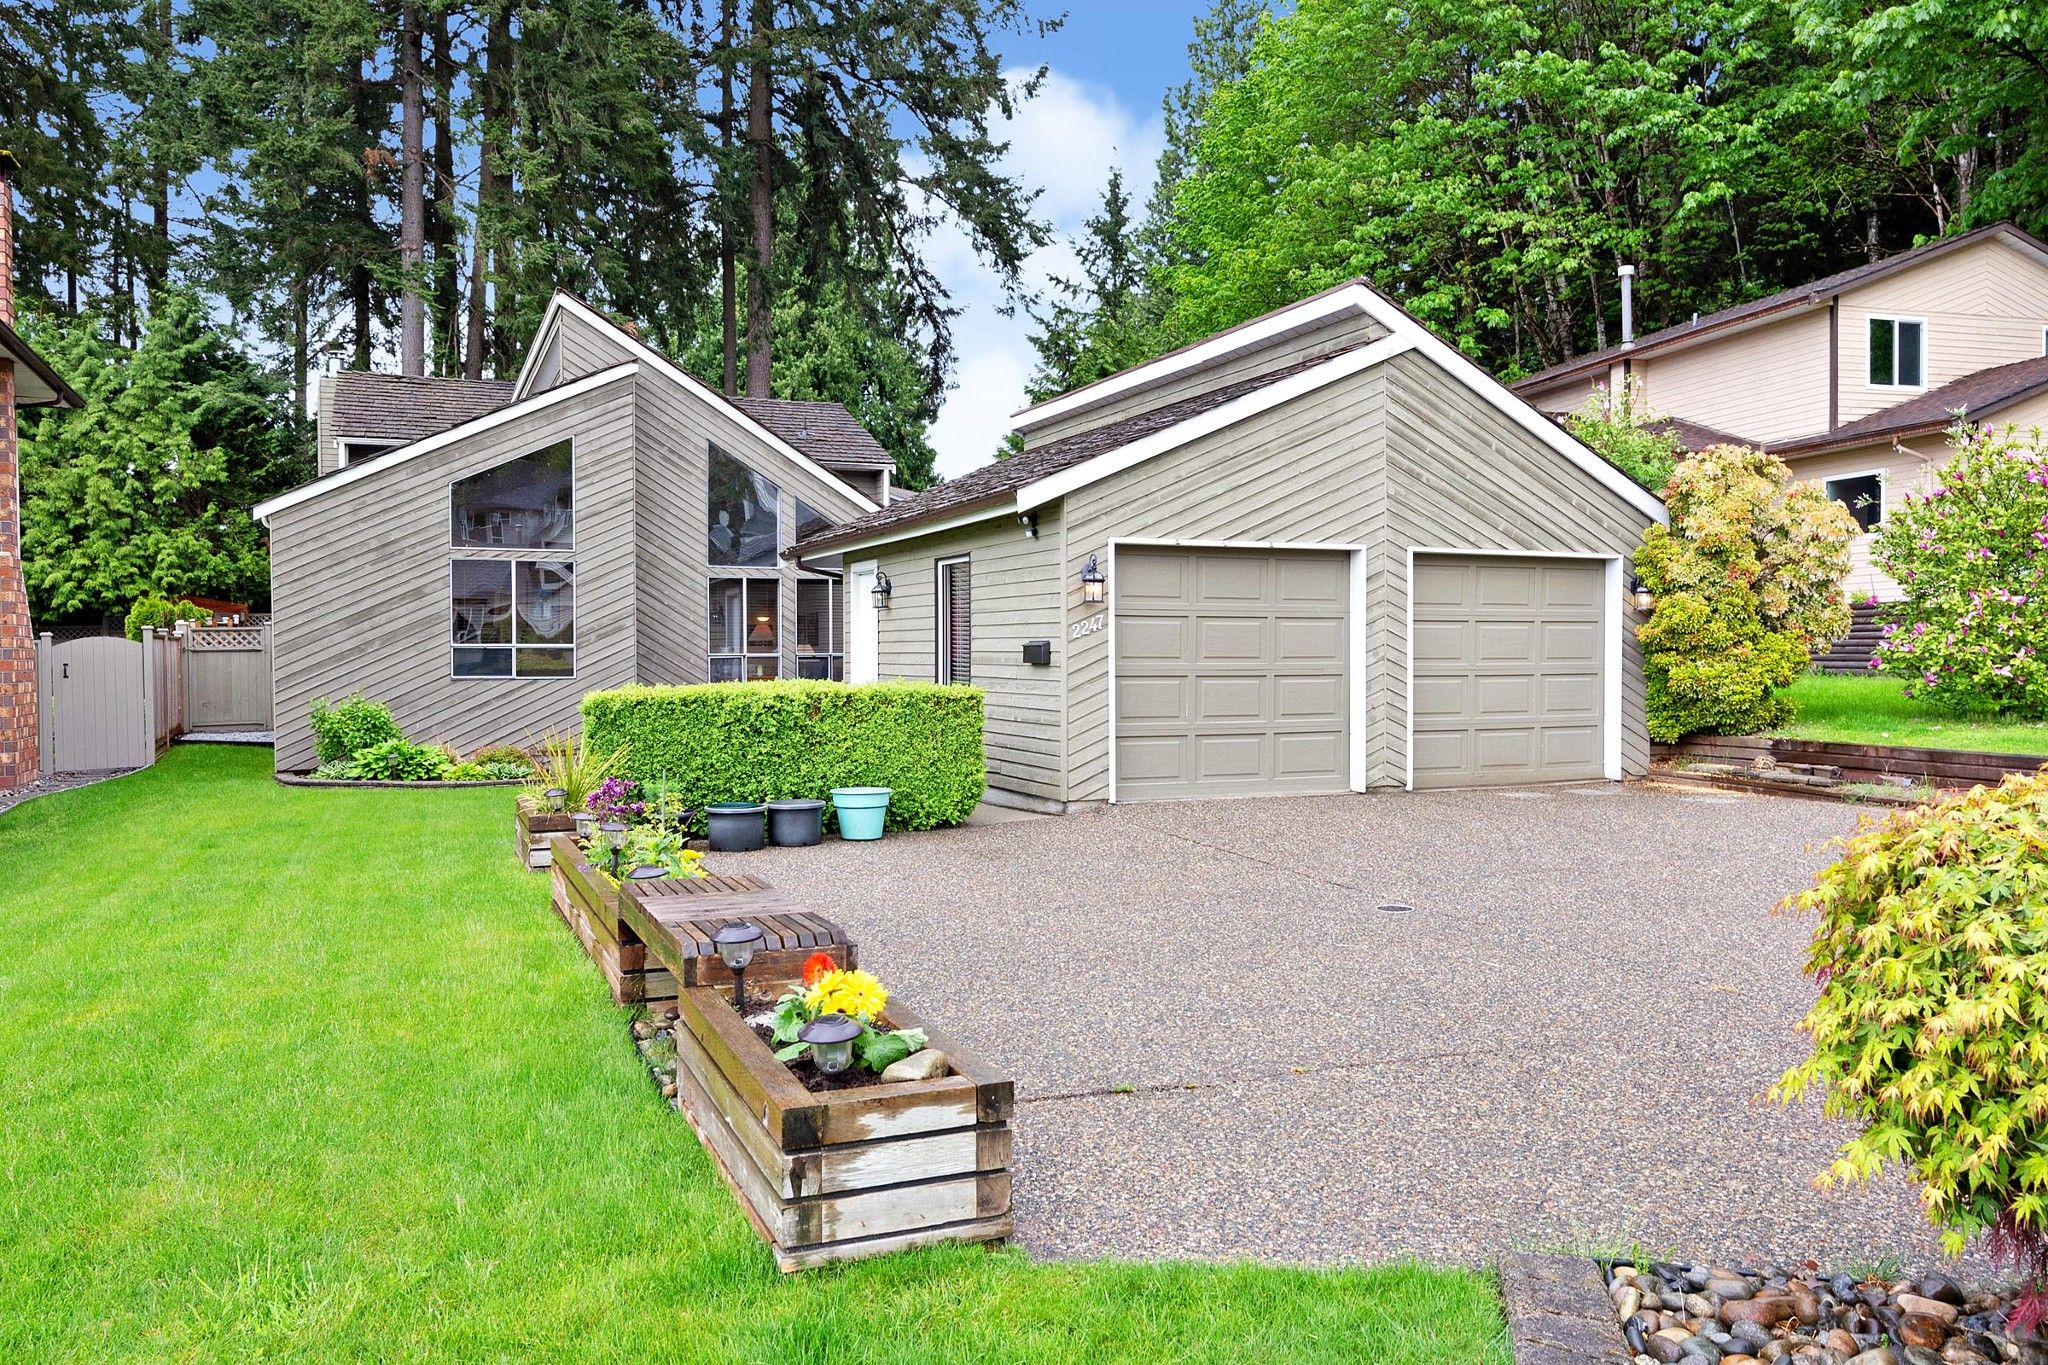 Main Photo: 2247 STAFFORD Avenue in Port Coquitlam: Mary Hill House for sale : MLS®# R2579928